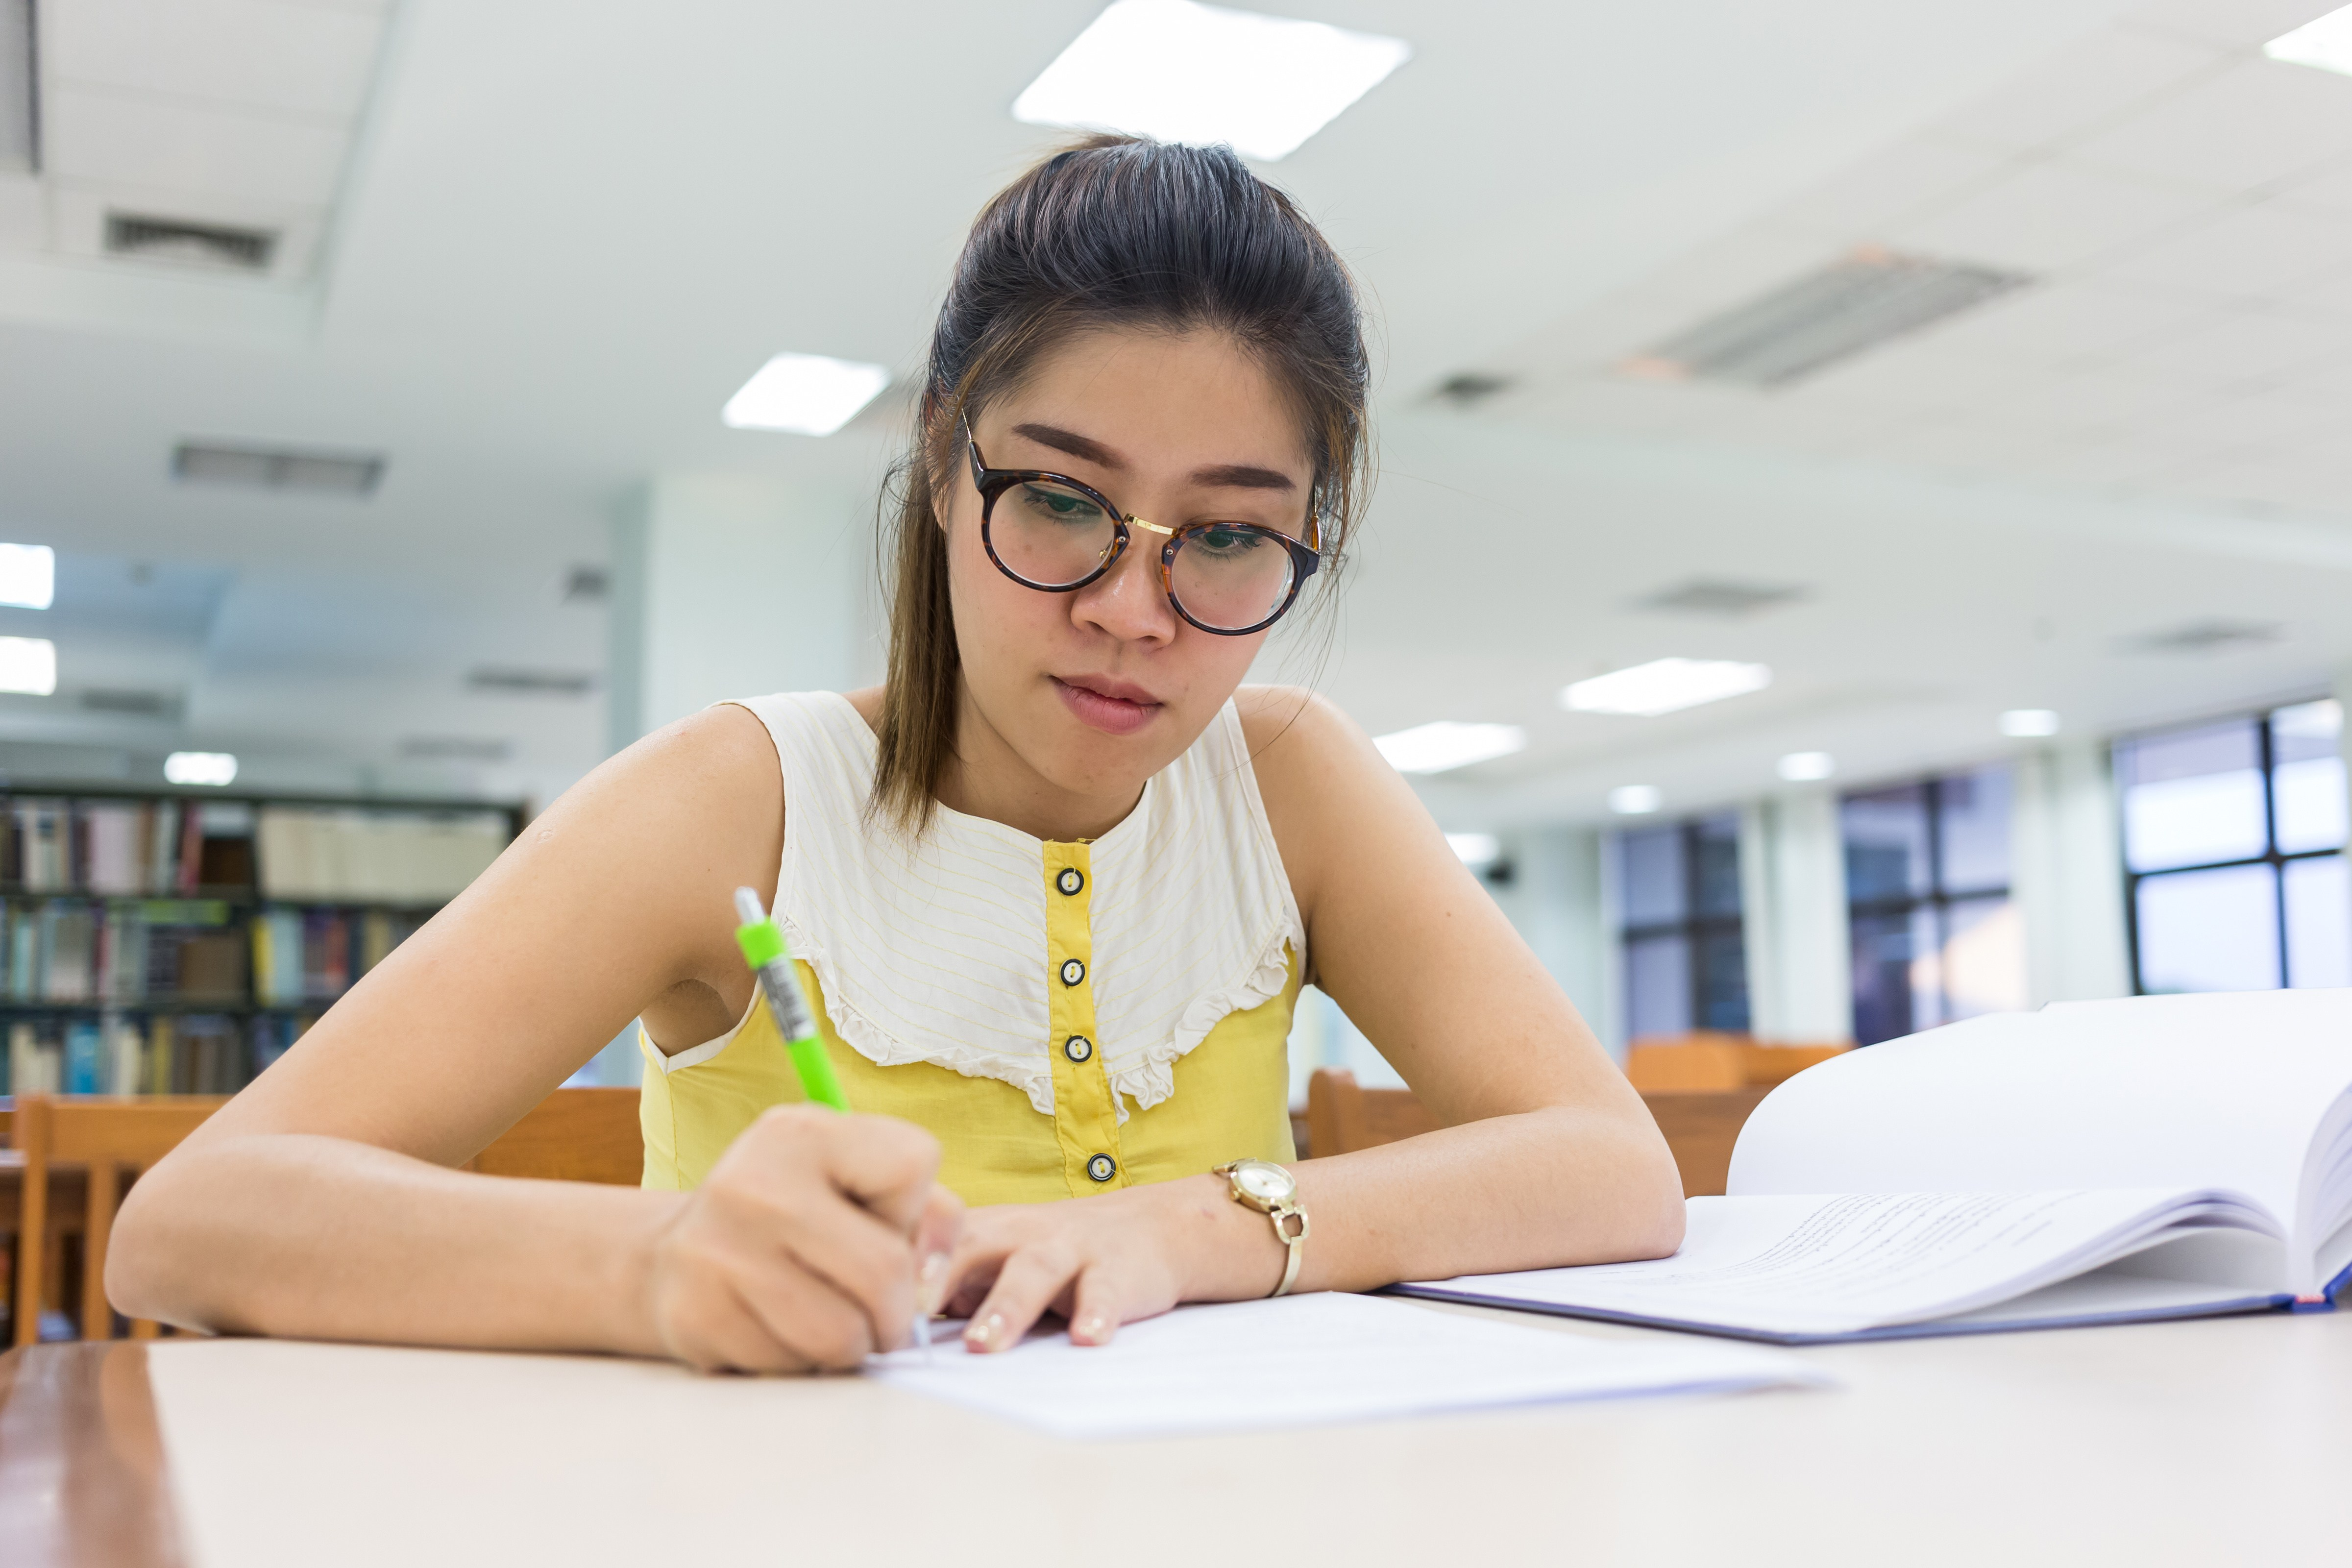 012 Essay Example Contests For High School Students Adobestock 91510247fit48002c3200ssl1 Staggering 2017 Full